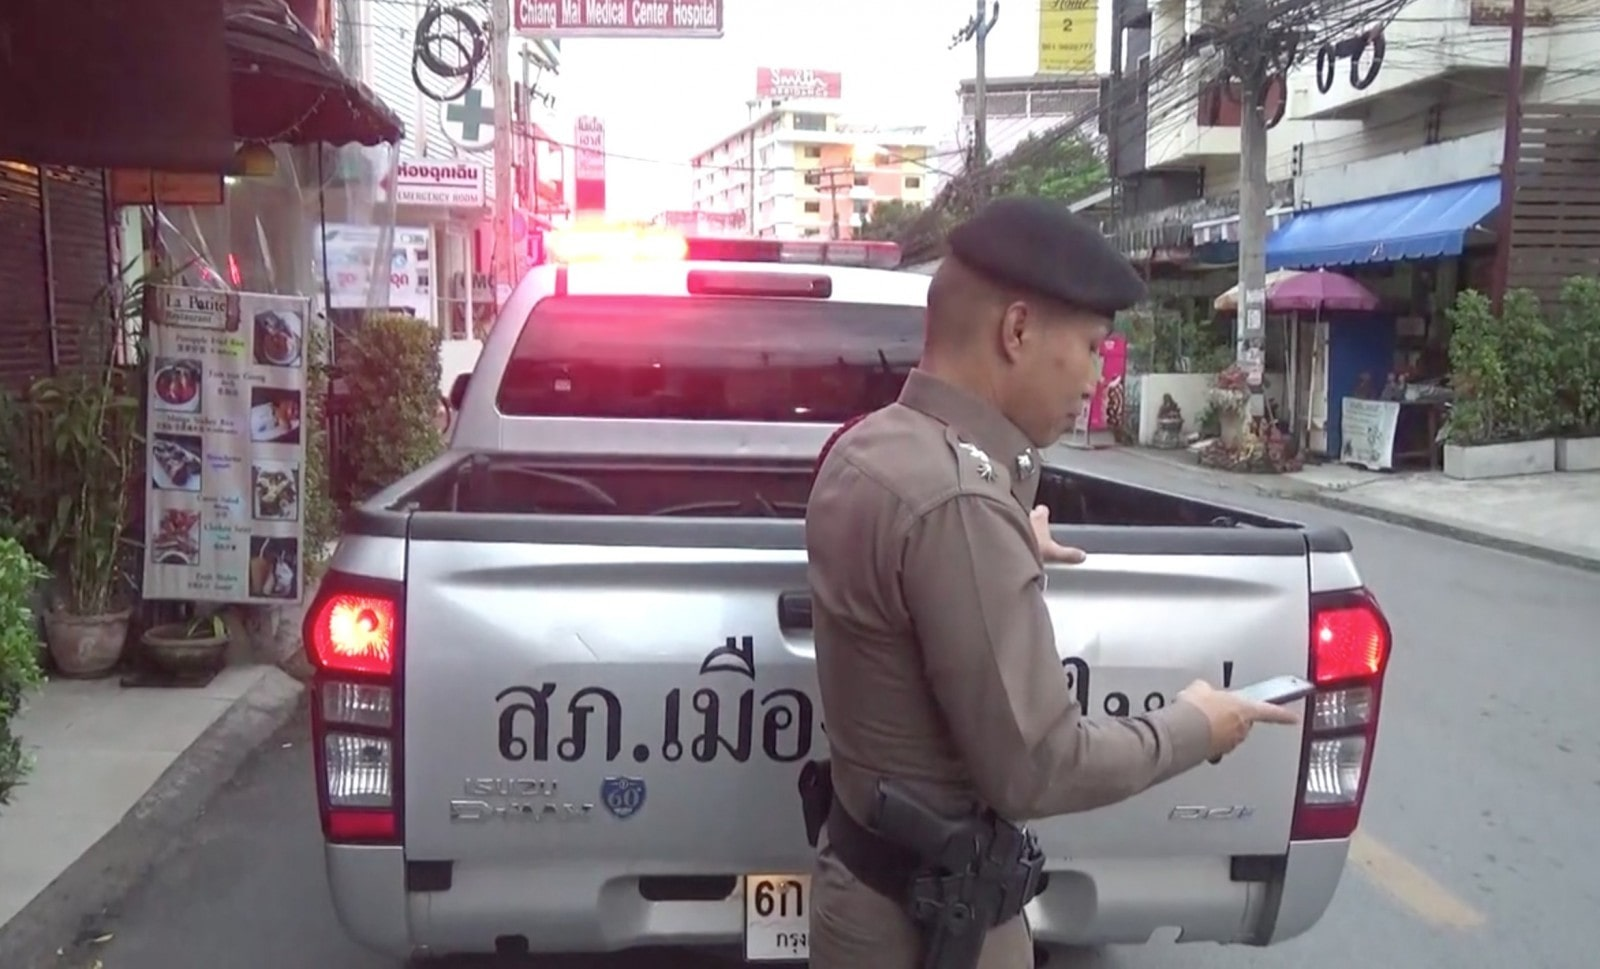 Gang violence flares up at a pub, ends up at hospital – Chiang Mai | The Thaiger